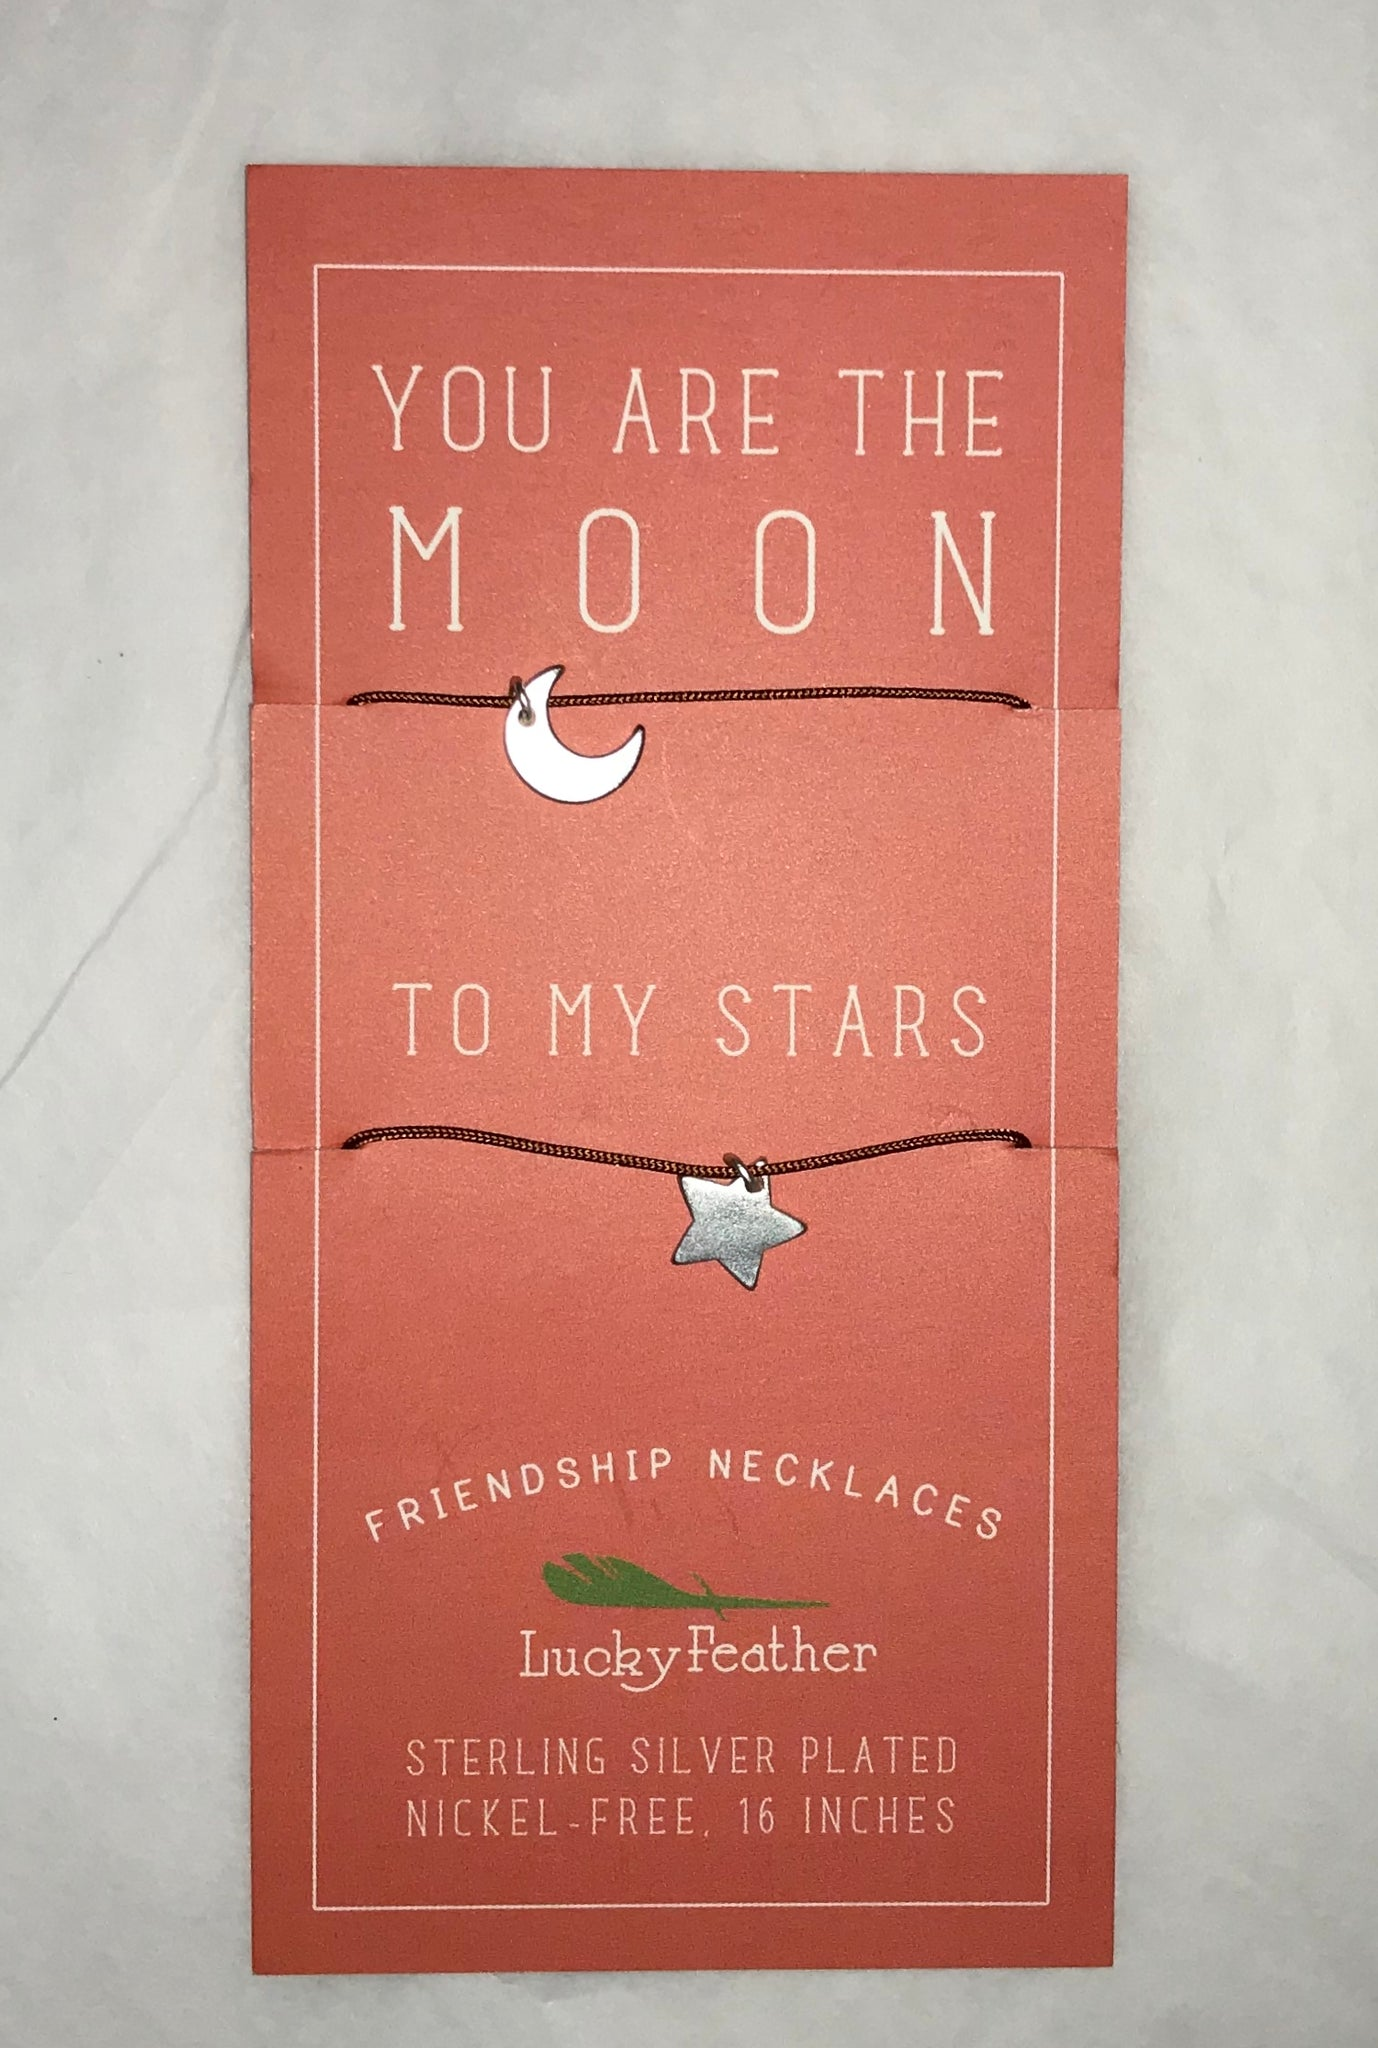 Moon To My Stars Friendship Necklaces